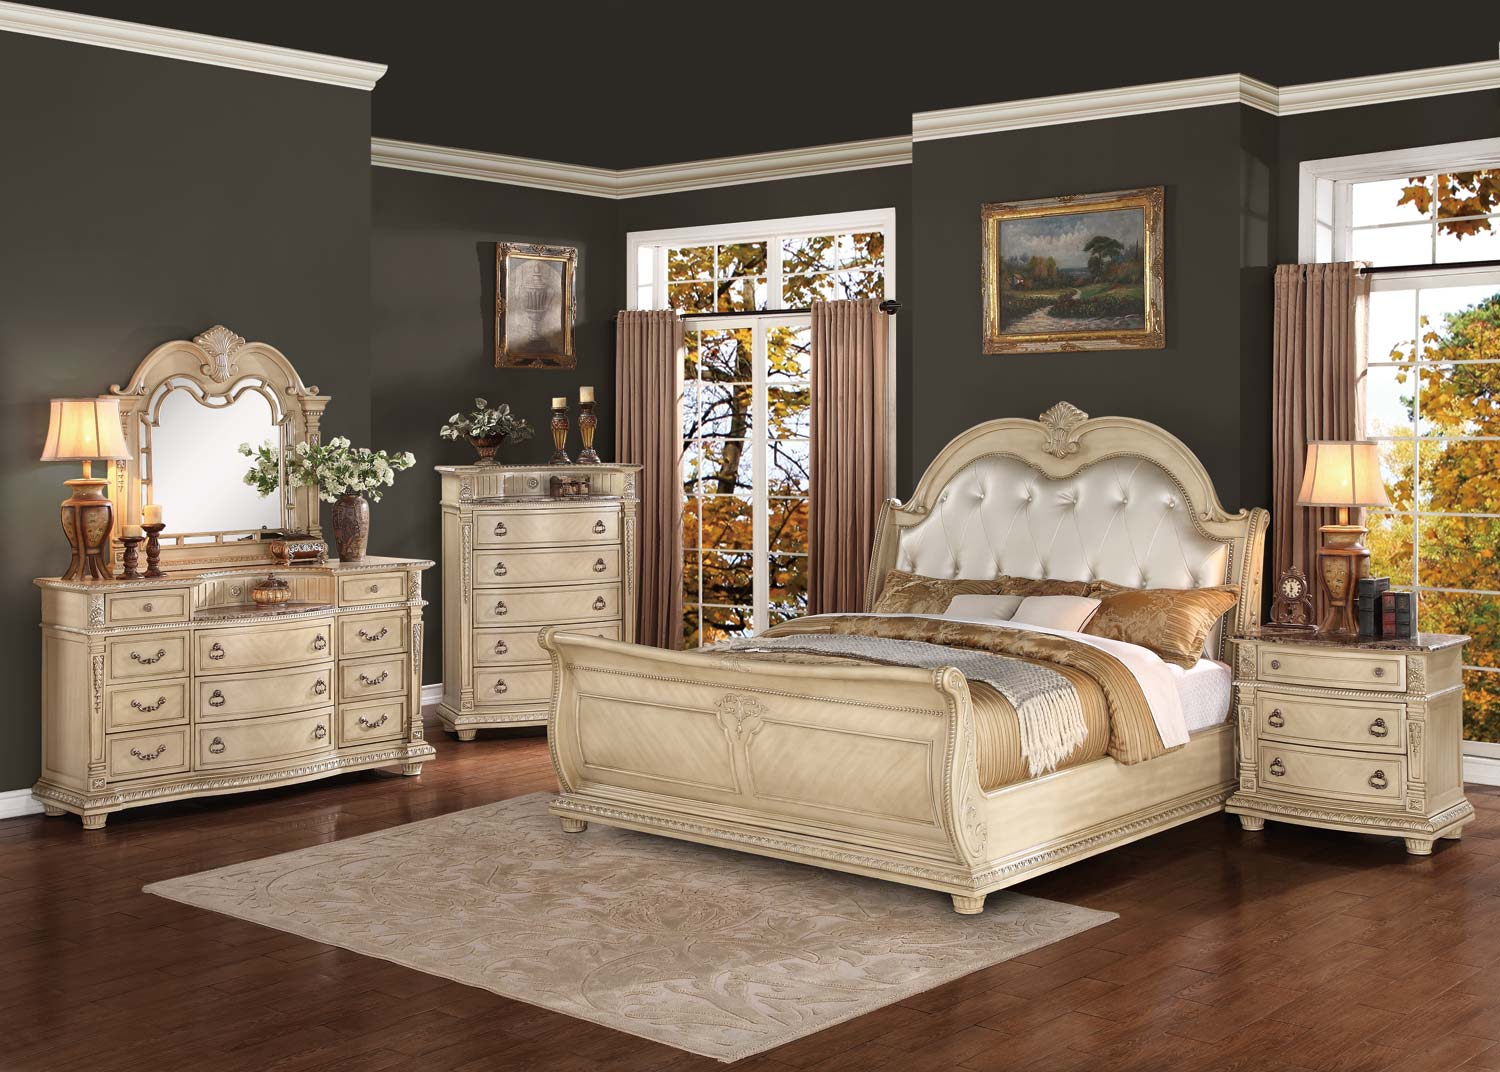 Homelegance palace ii upholstered bedroom set antique - White vintage bedroom furniture sets ...